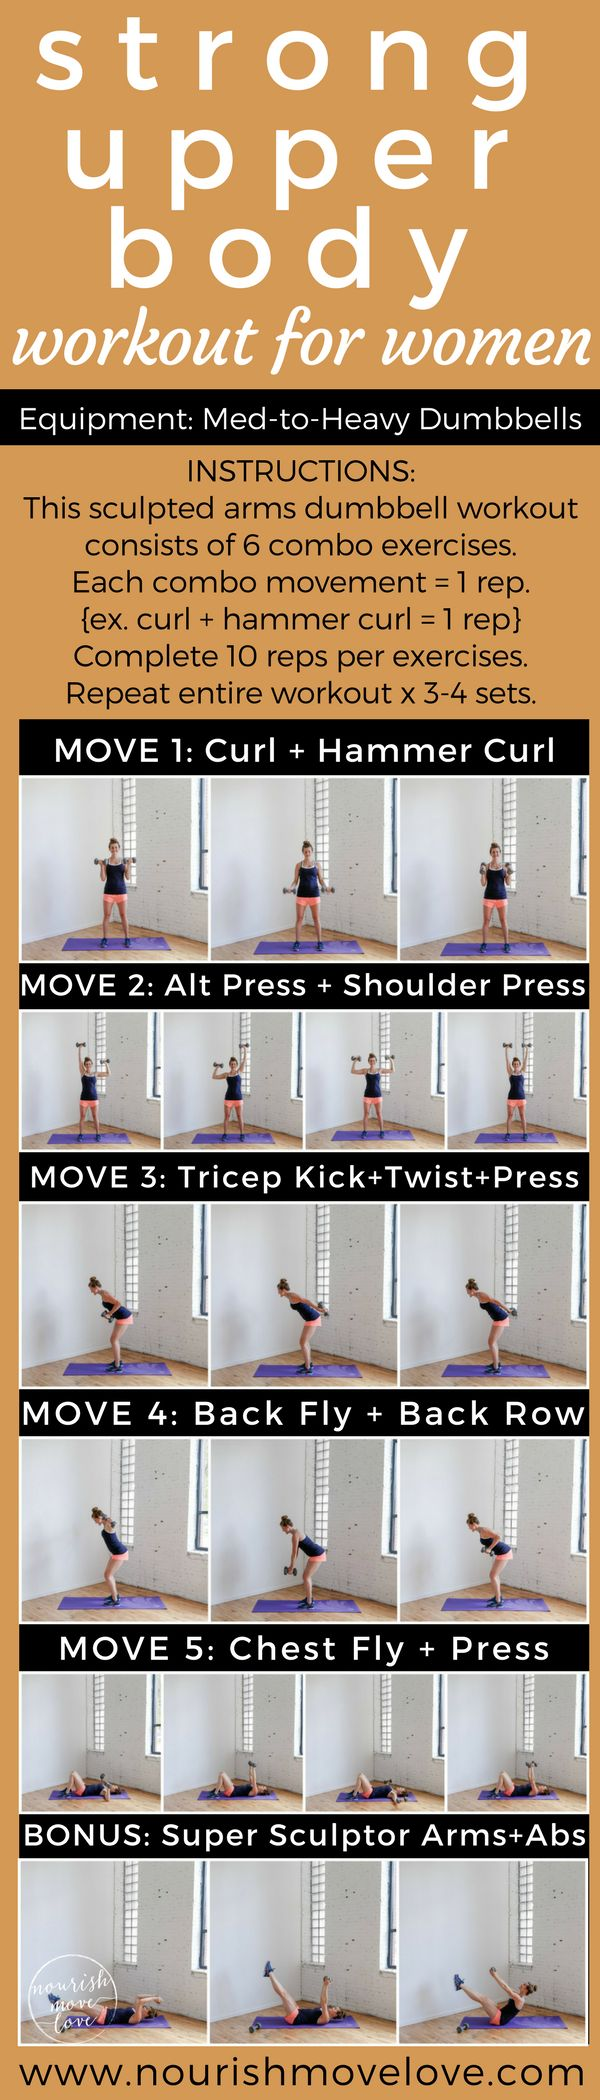 Sculpted arms dumbbell workout - 20 minute, six exercises to build lean muscle and upper body strength   Posted By: CustomWeightLossProgram.com